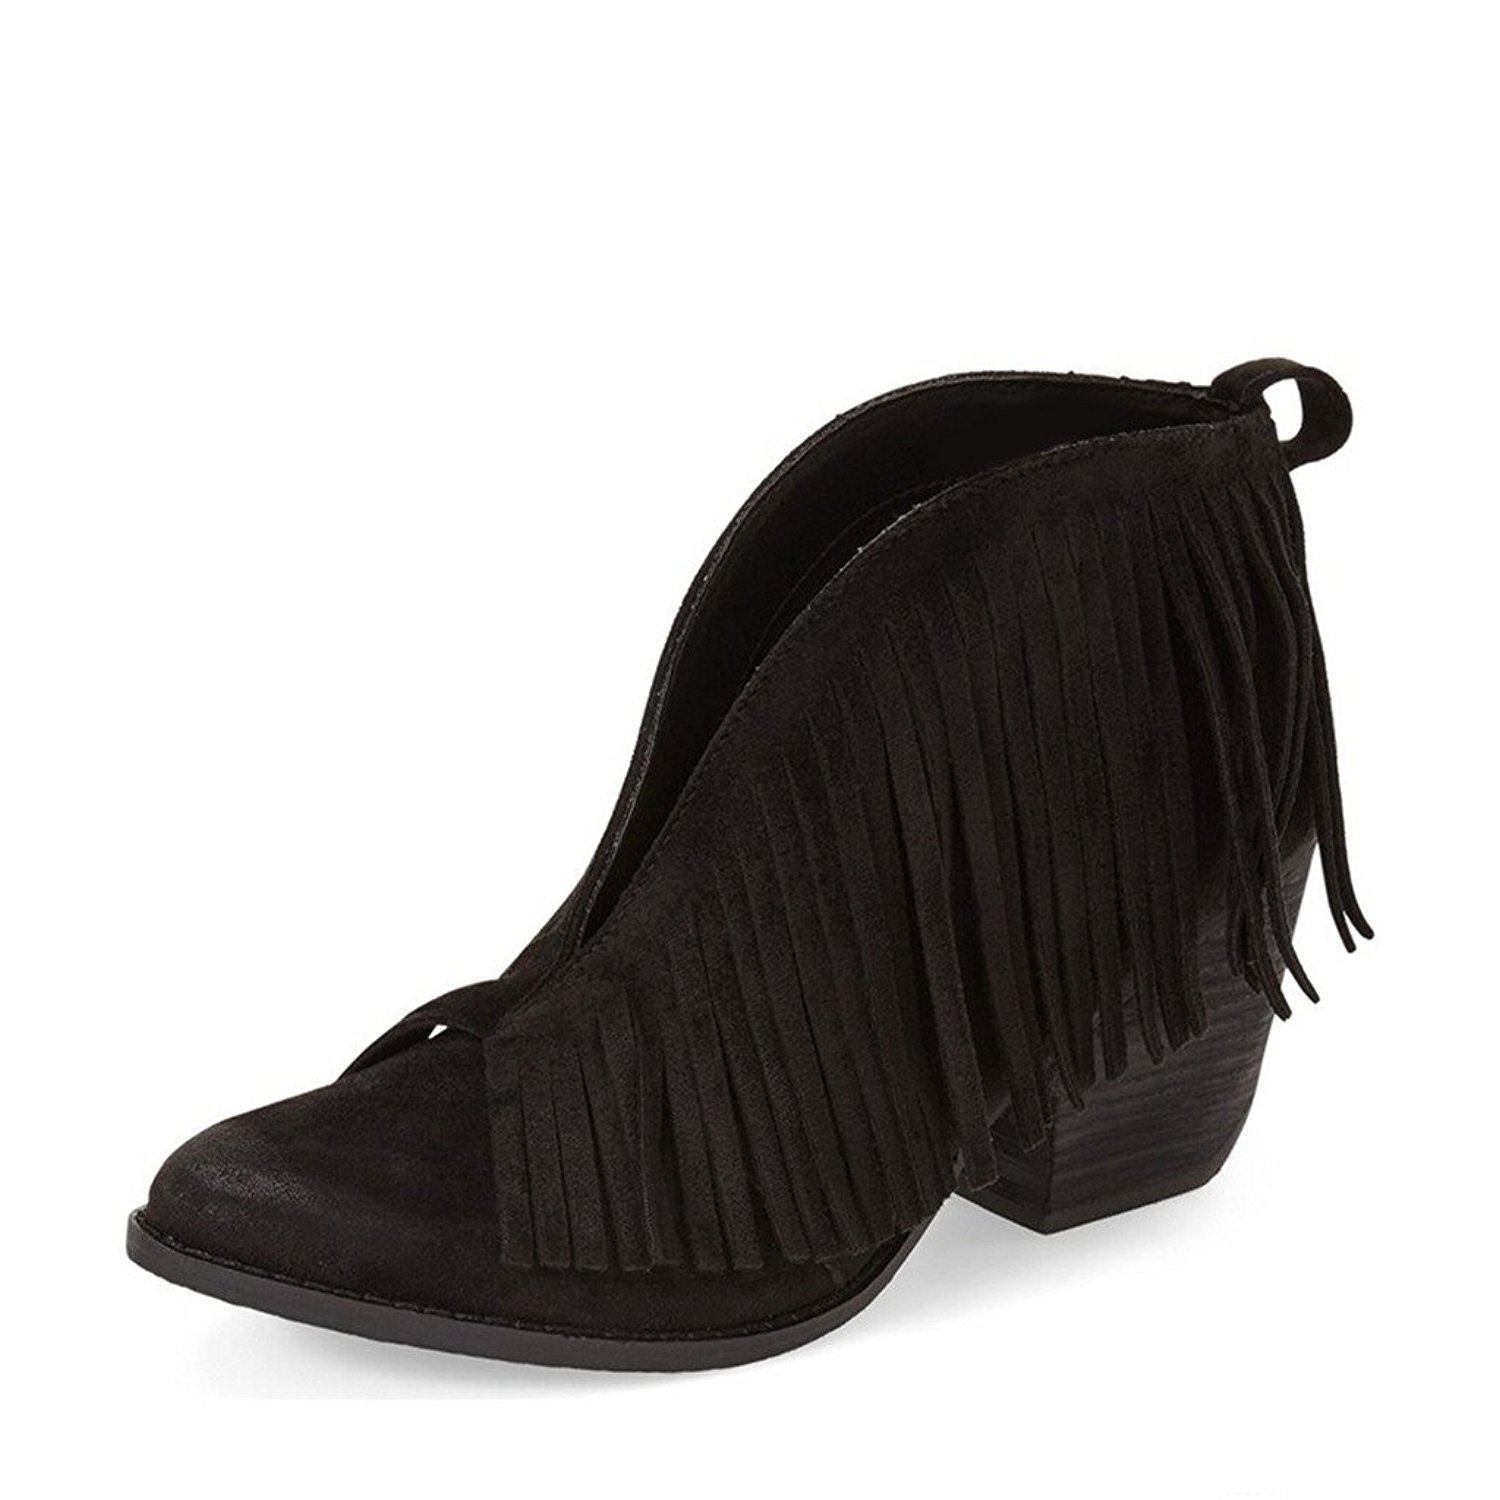 YDN Western Ankle High Boots with Tassels Round Retro Toe Block Heel Suede Retro Round Booties B01KC29L5A 9.5 B(M) US|Black c137c2